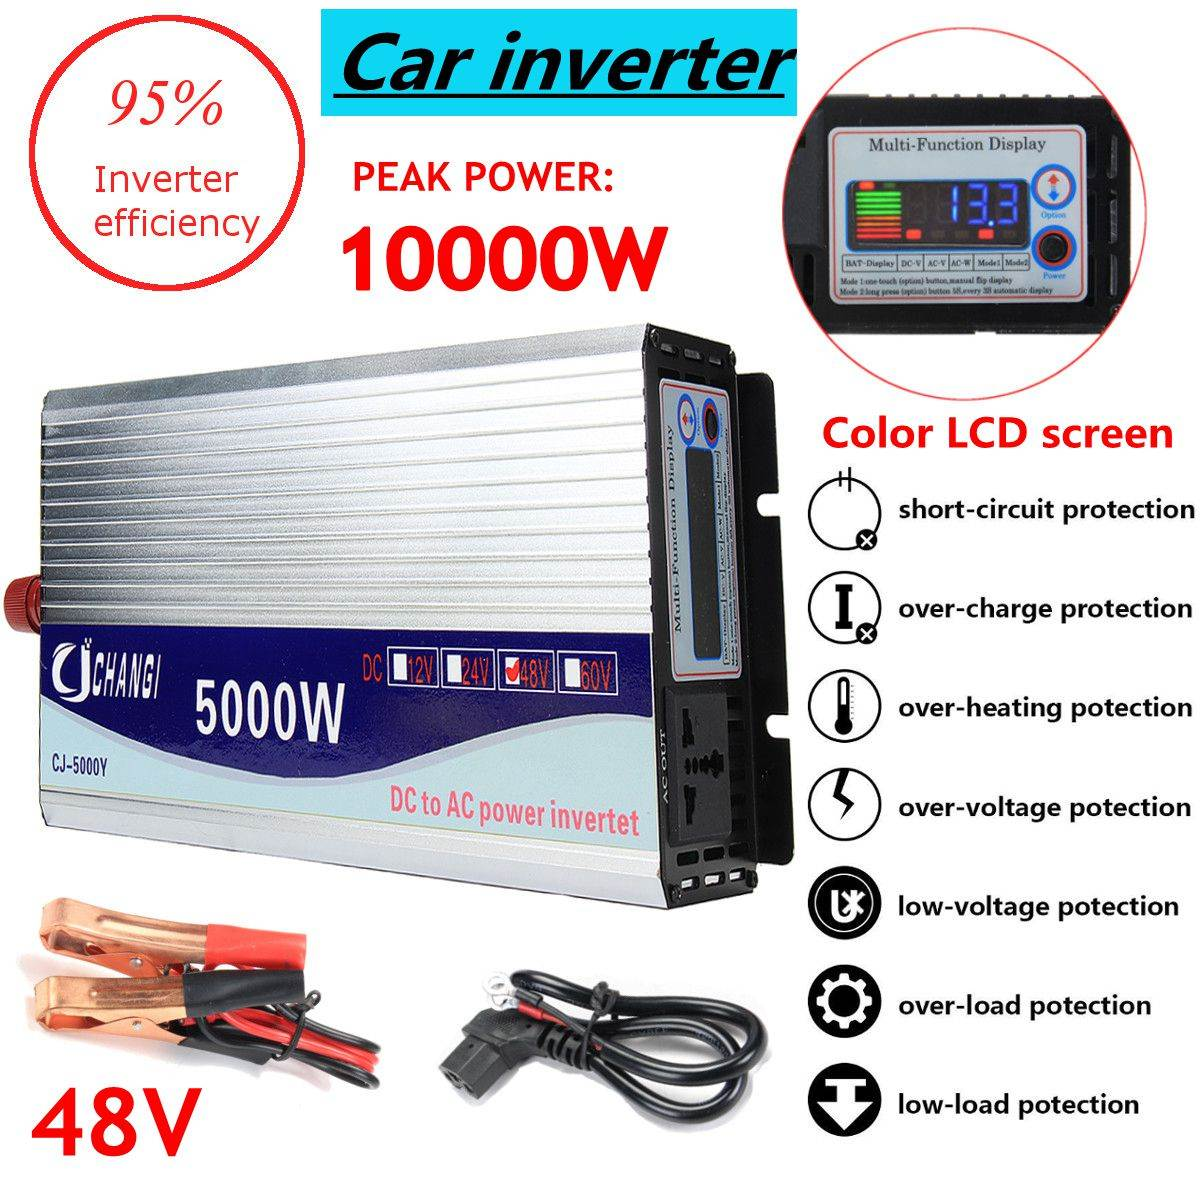 Inverter 12 v/24 v/48 v 220 v 5000 watt 10000 watt Peak-Modifizierte Sinus Welle power Spannung transformator Inverter Konverter + LCD display